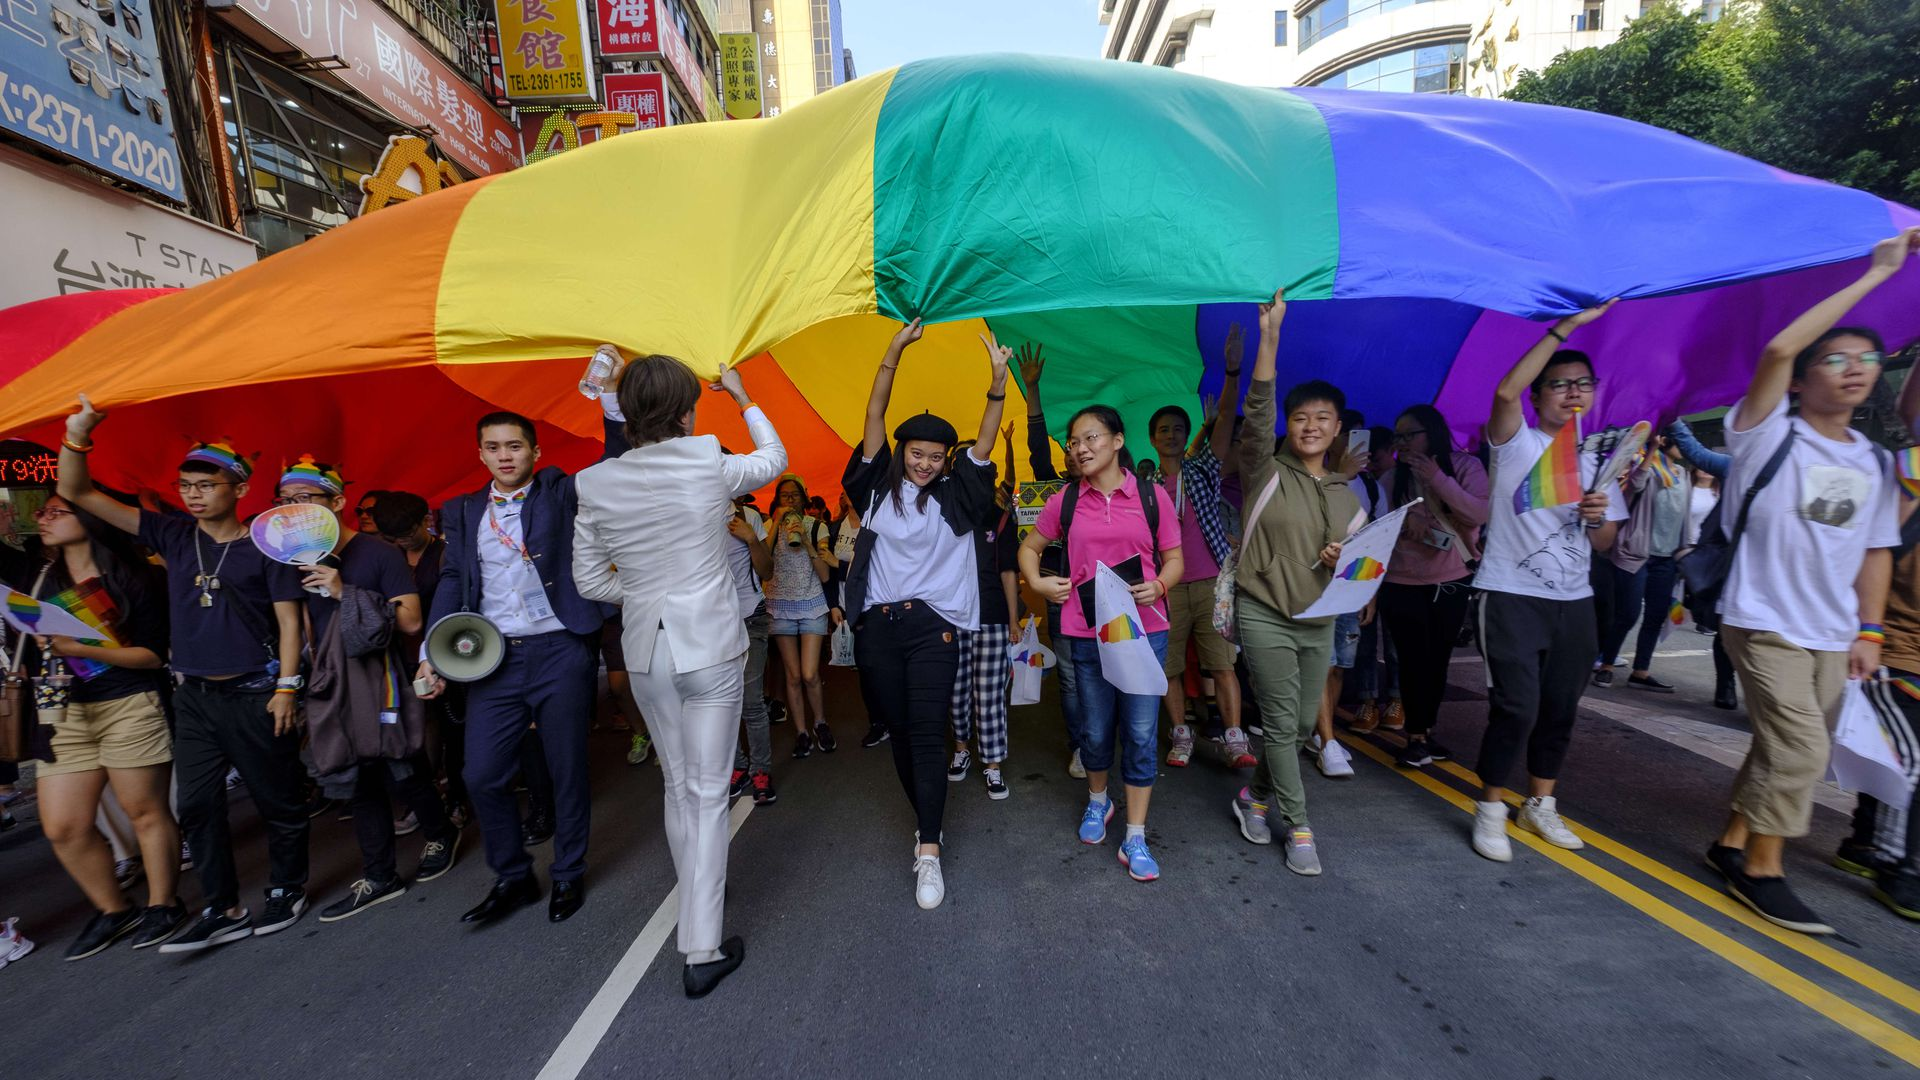 In this image, a line of demonstrators walk down the street carrying a large rainbow flag aloft.